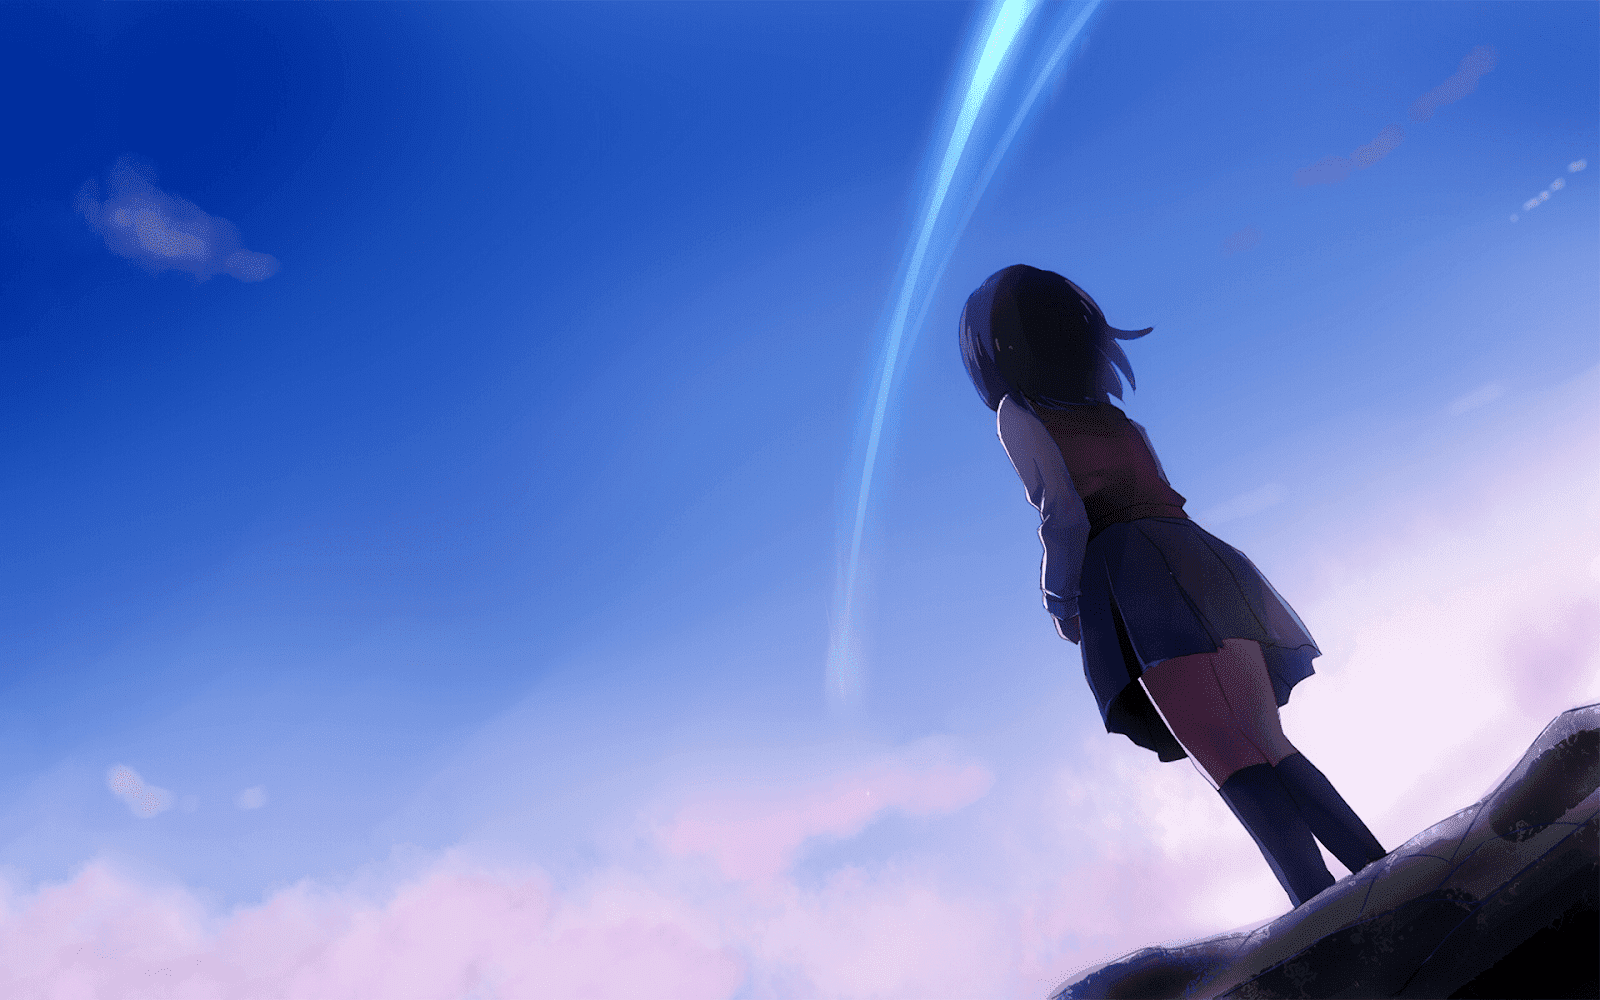 AowVN%2B%252836%2529 - [ Hình Nền ] Anime Your Name. - Kimi no Nawa full HD cực đẹp | Anime Wallpaper